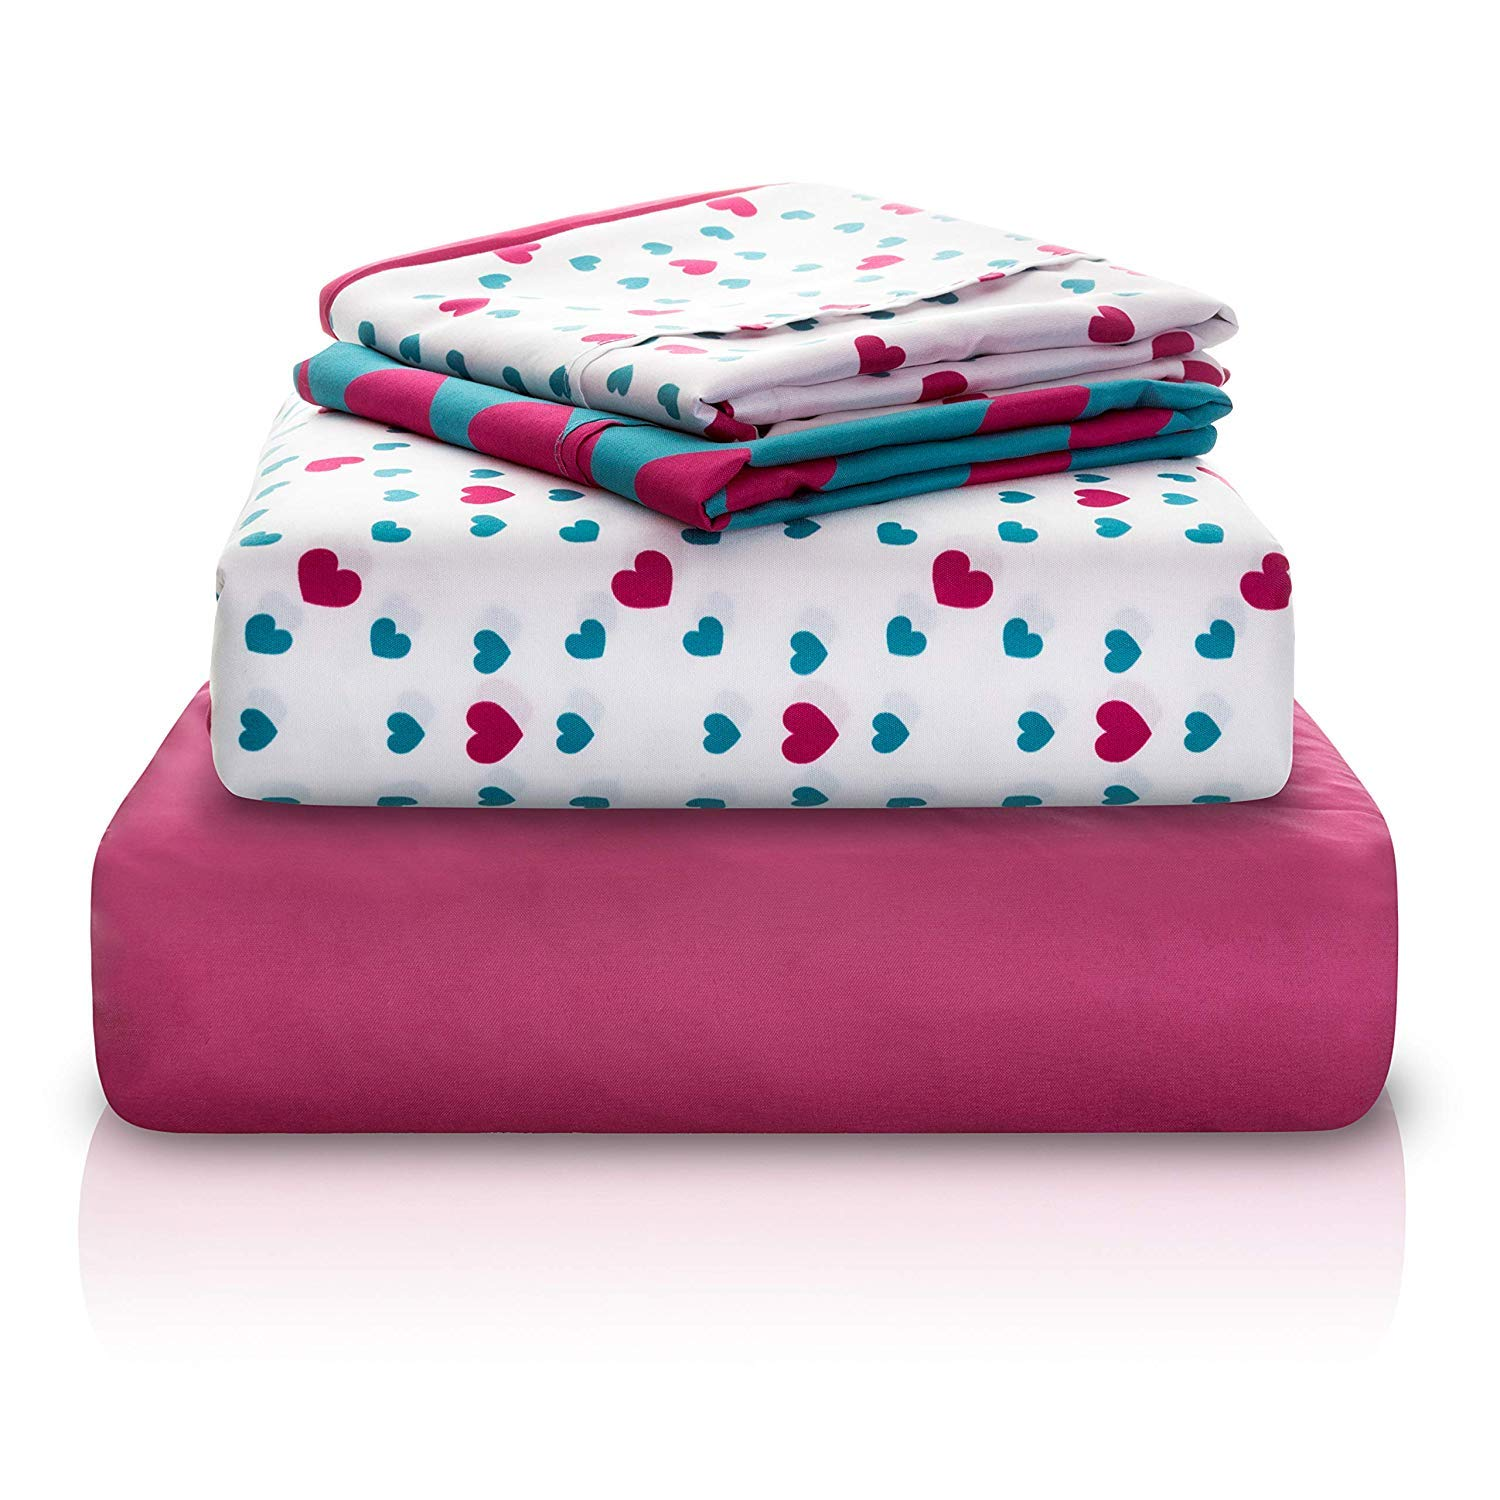 Chital Twin Bed Sheets for Girls | 4 Pc Red & Green Hearts Print | 1 Flat & 1 Fitted Sheet, 2 Pillow Cases | Durable Super-Soft, Double-Brushed Microfiber | 15'' Deep